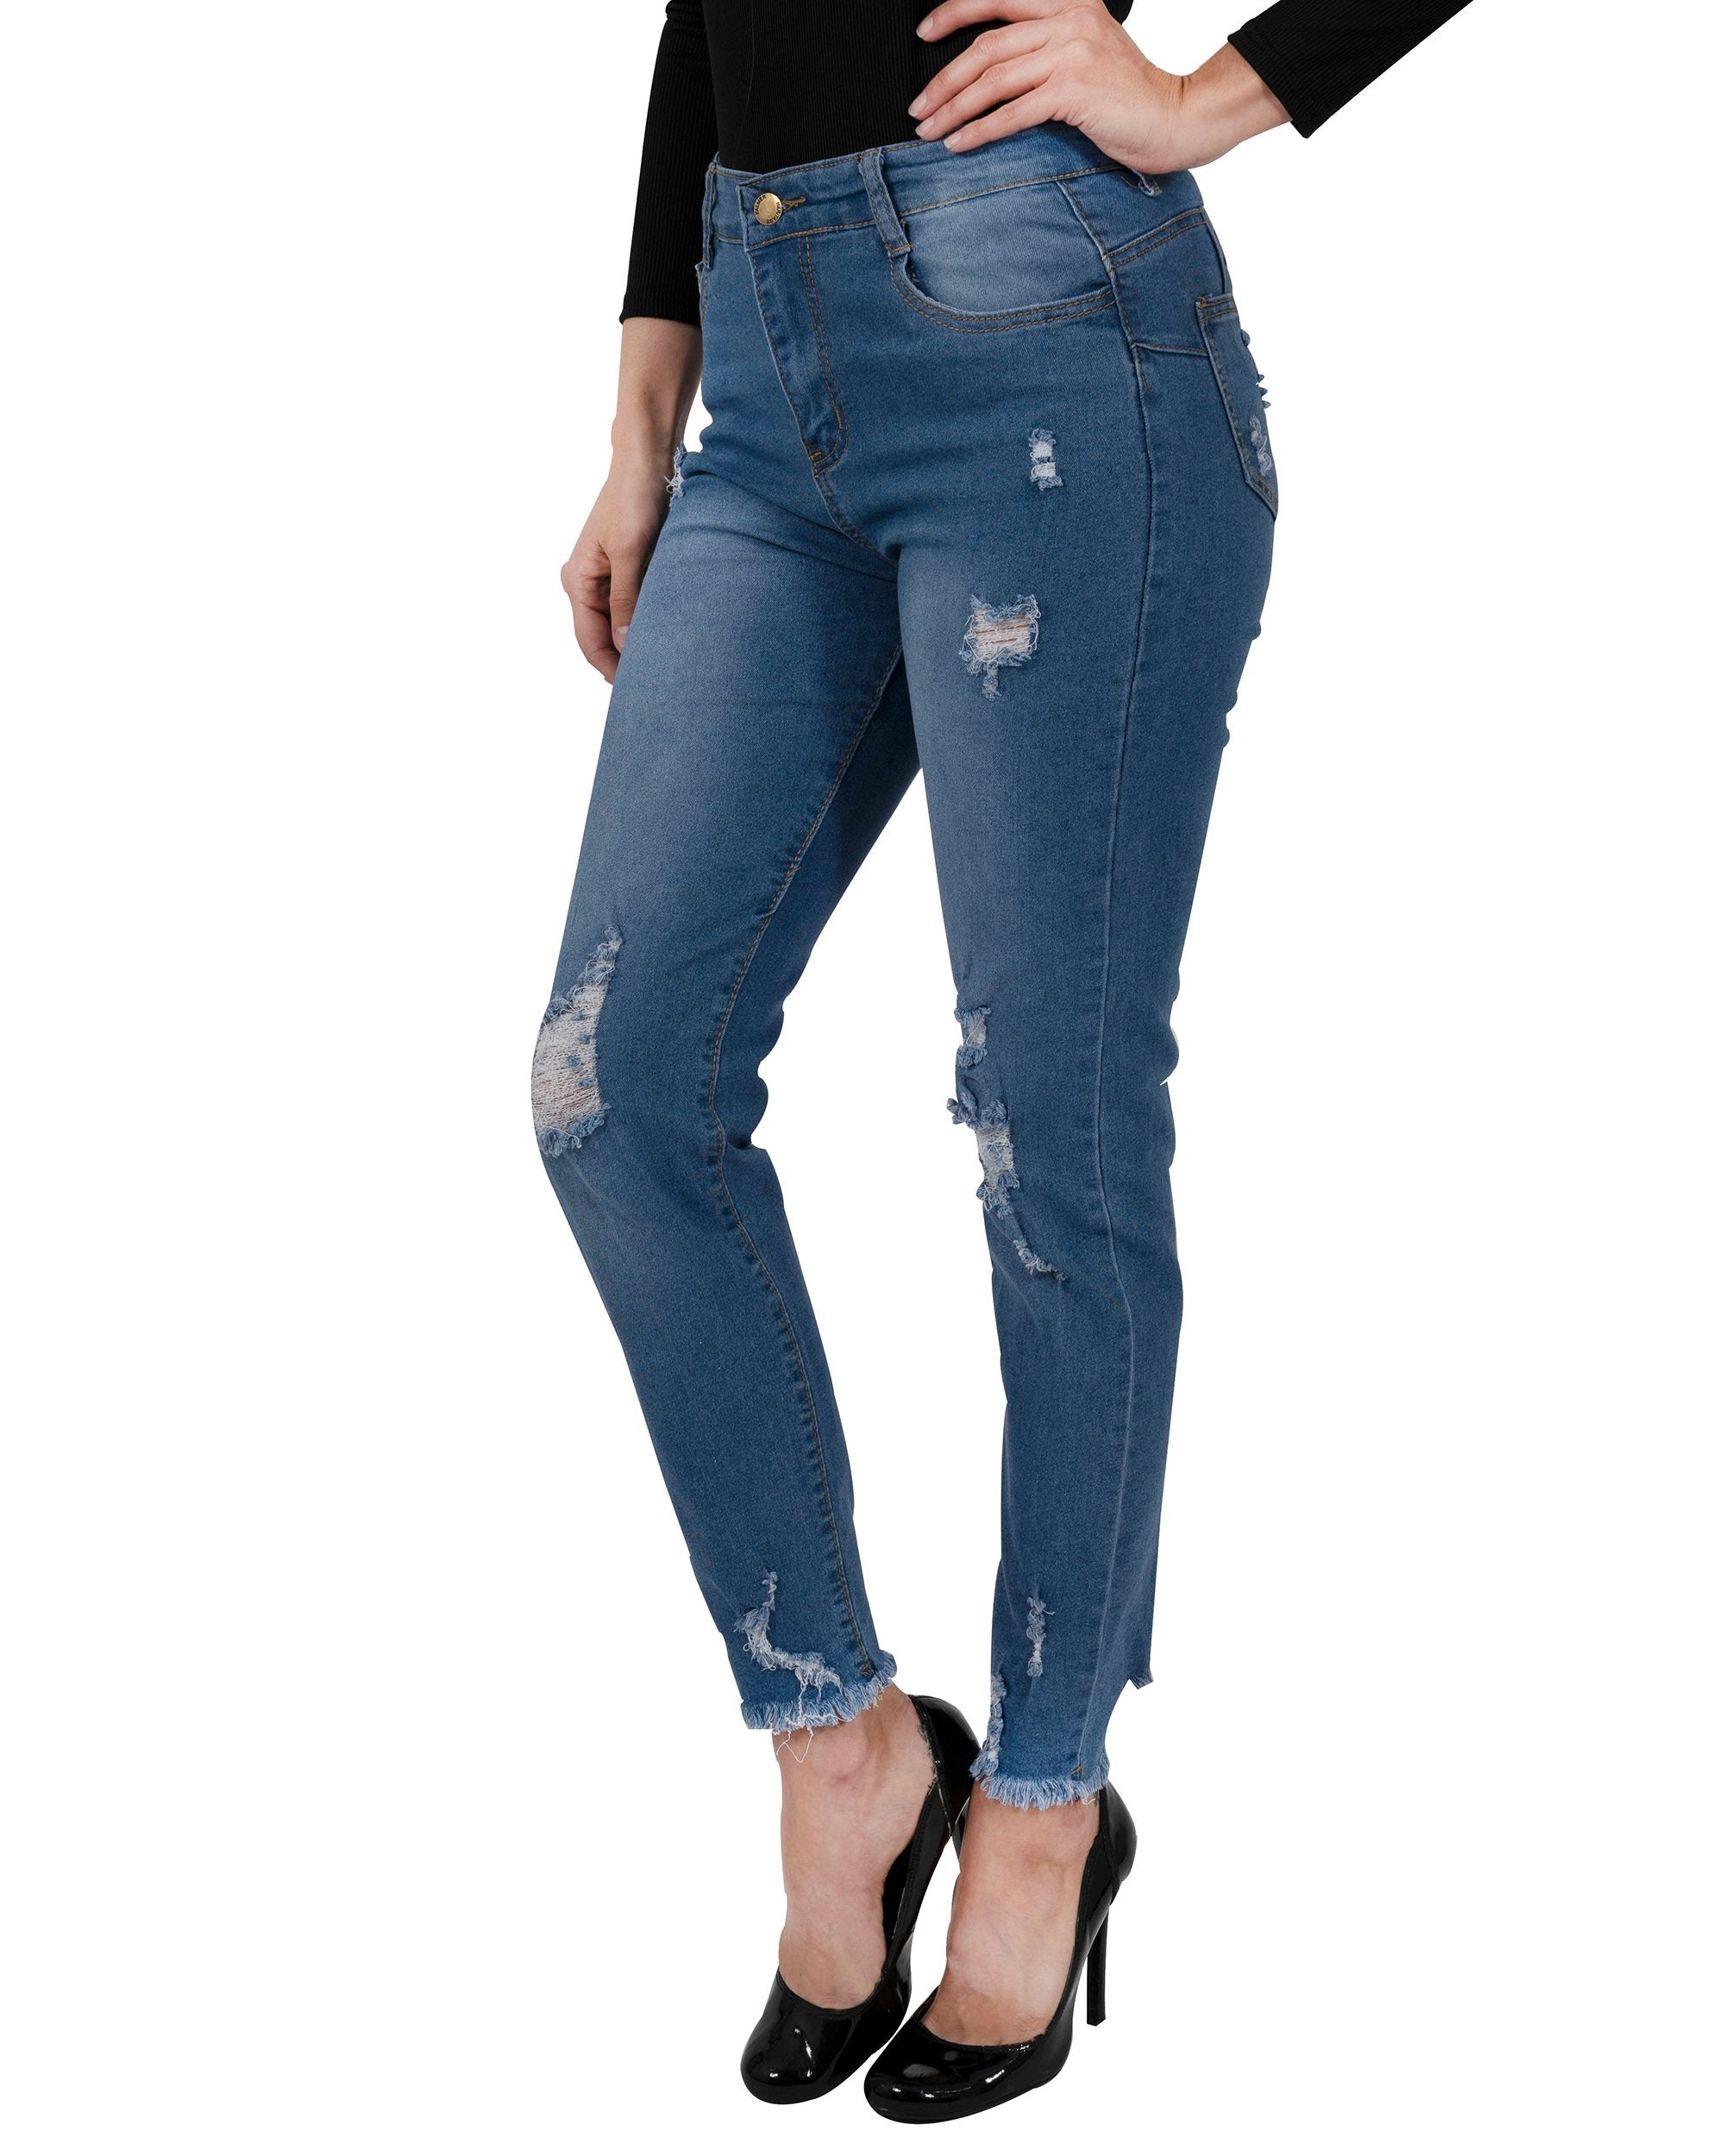 Via Rodeo High Waisted Skinny Jeans - TRINQUETZ